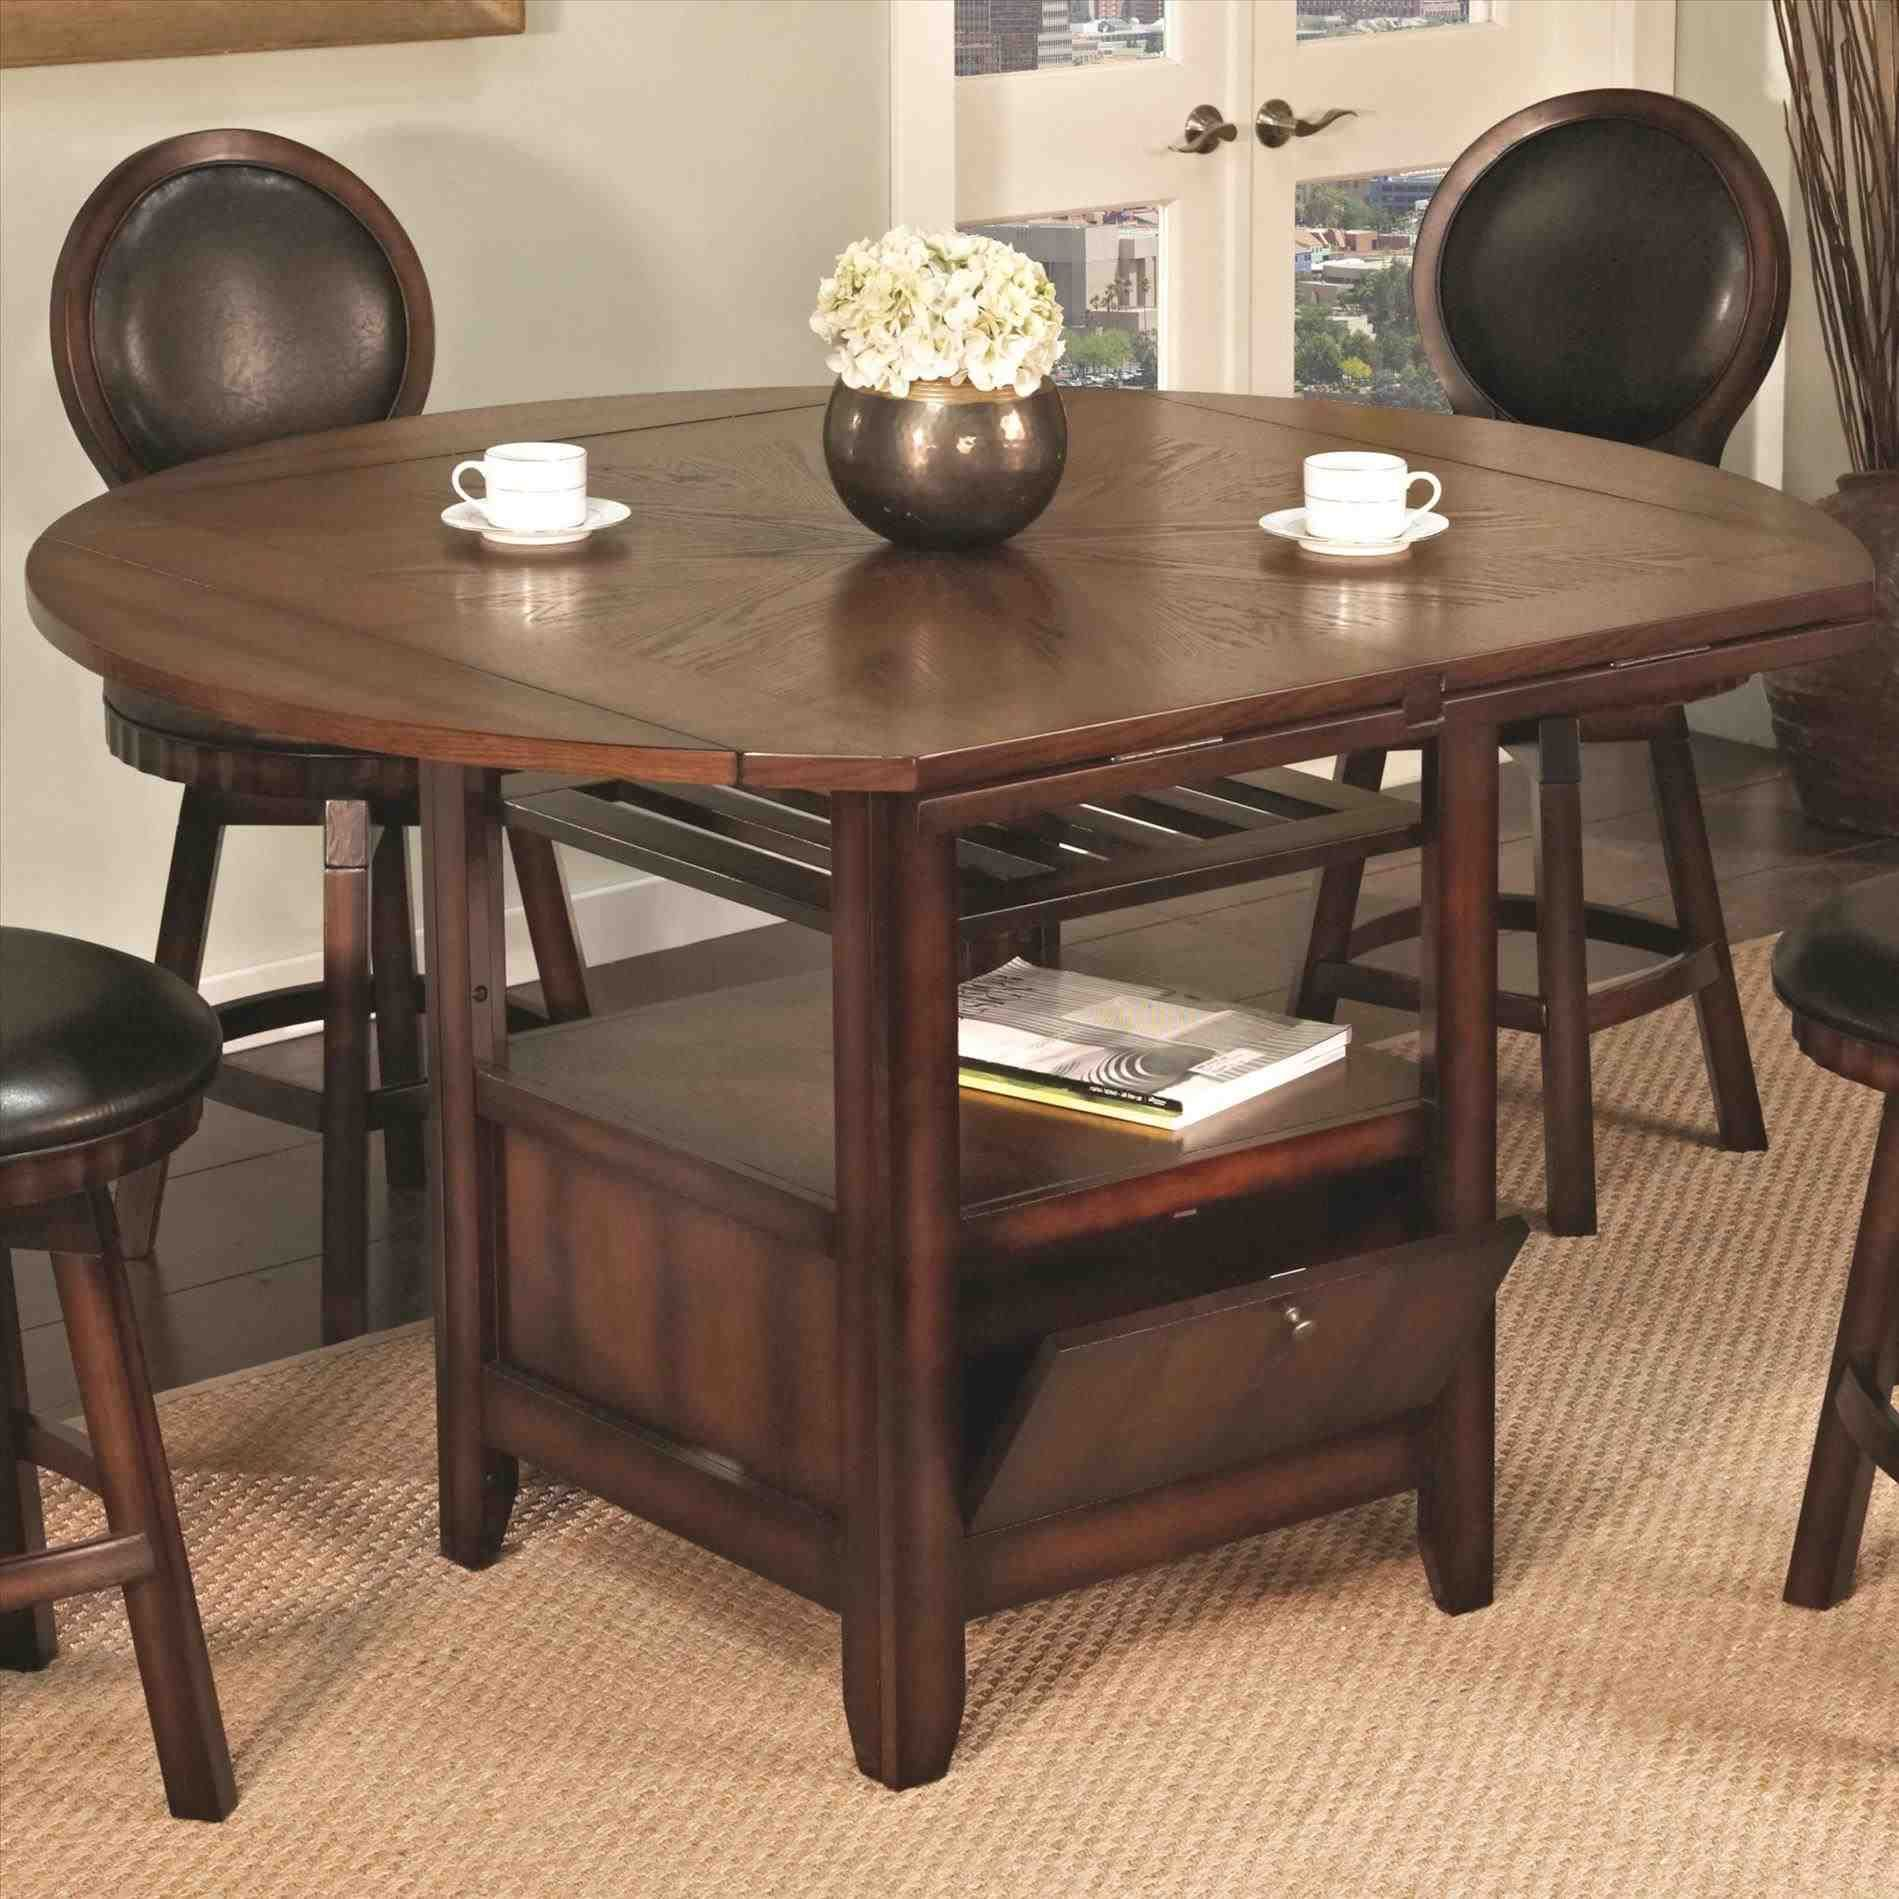 New Post Cheap Kitchen Table And Chair Sets  Decors Ideas Entrancing Cheap Dining Room Table And Chair Sets 2018